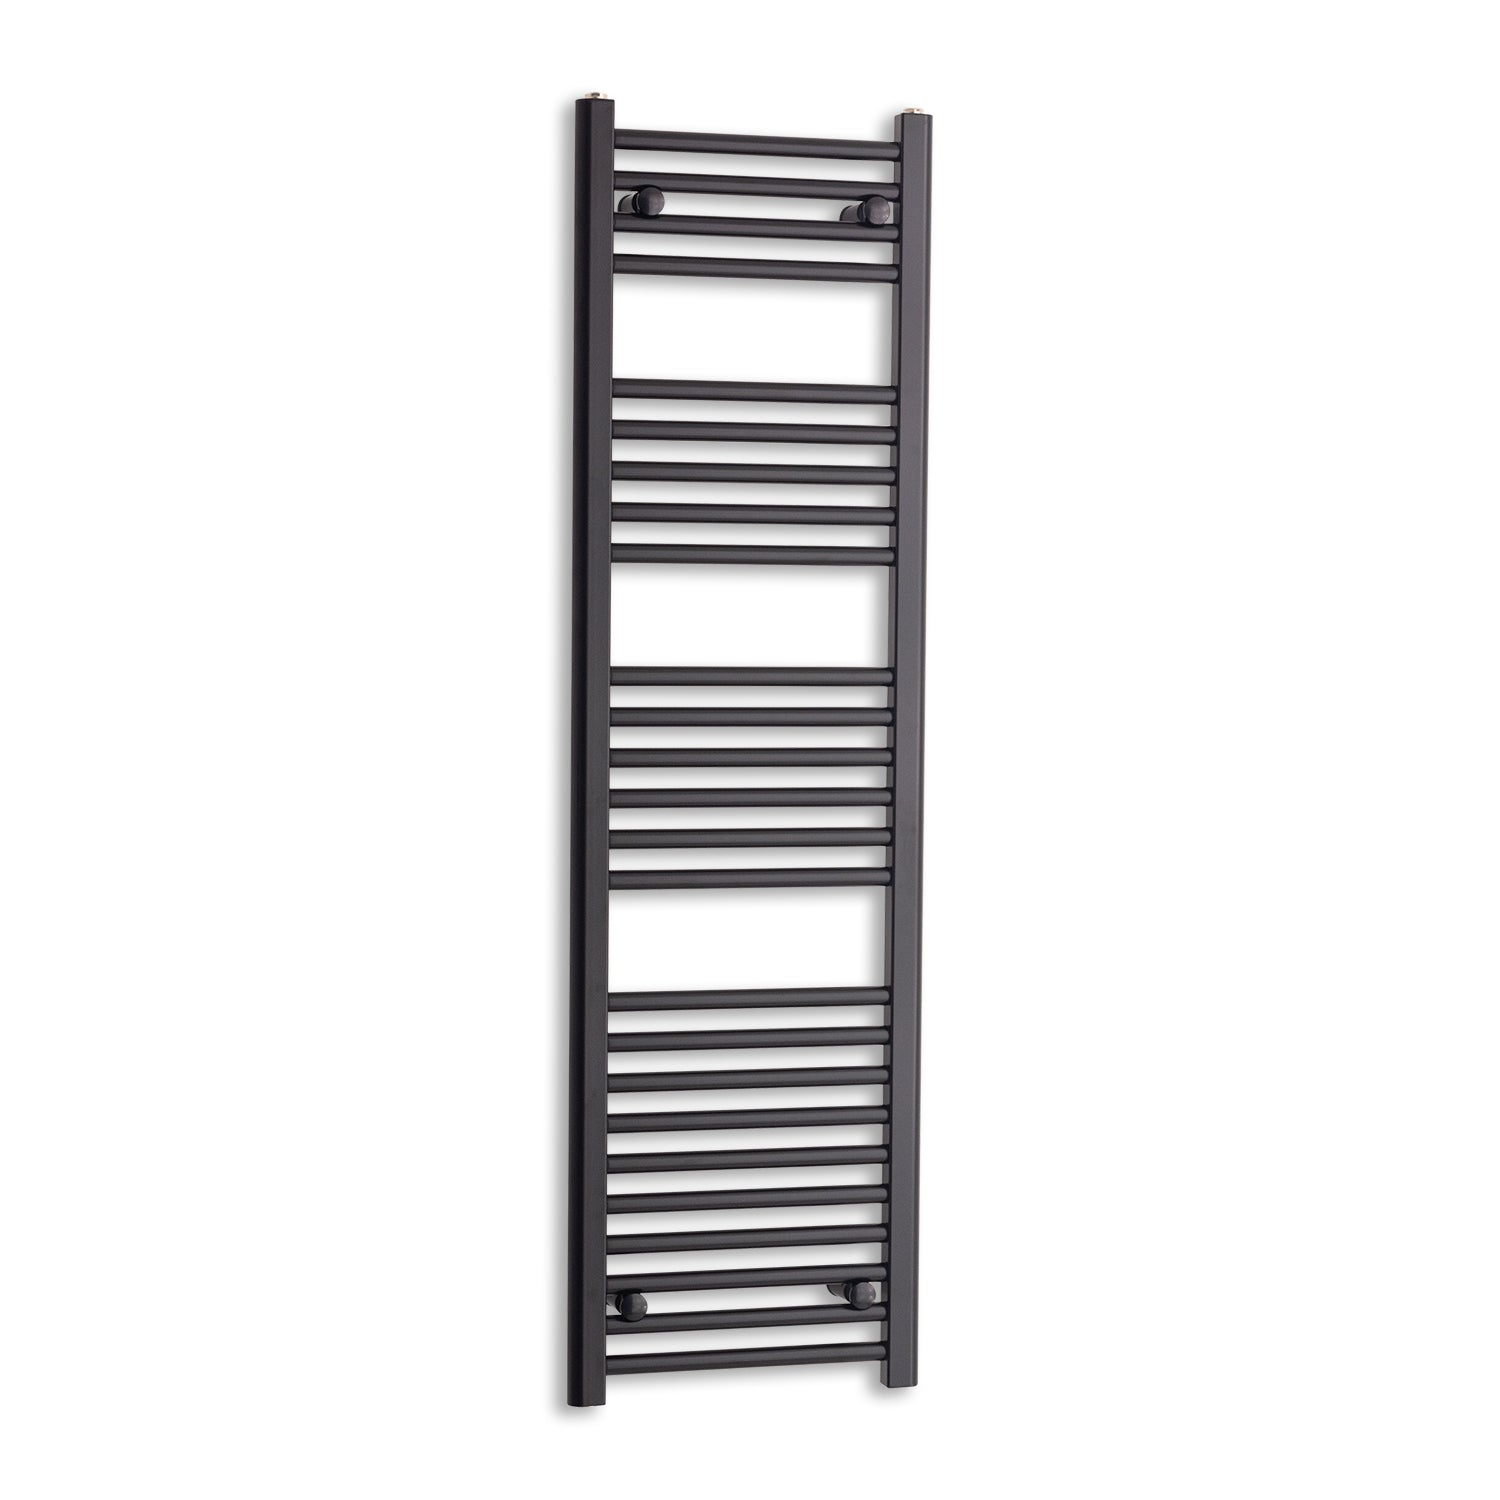 400mm Wide 1400mm High Black Towel Rail Radiator